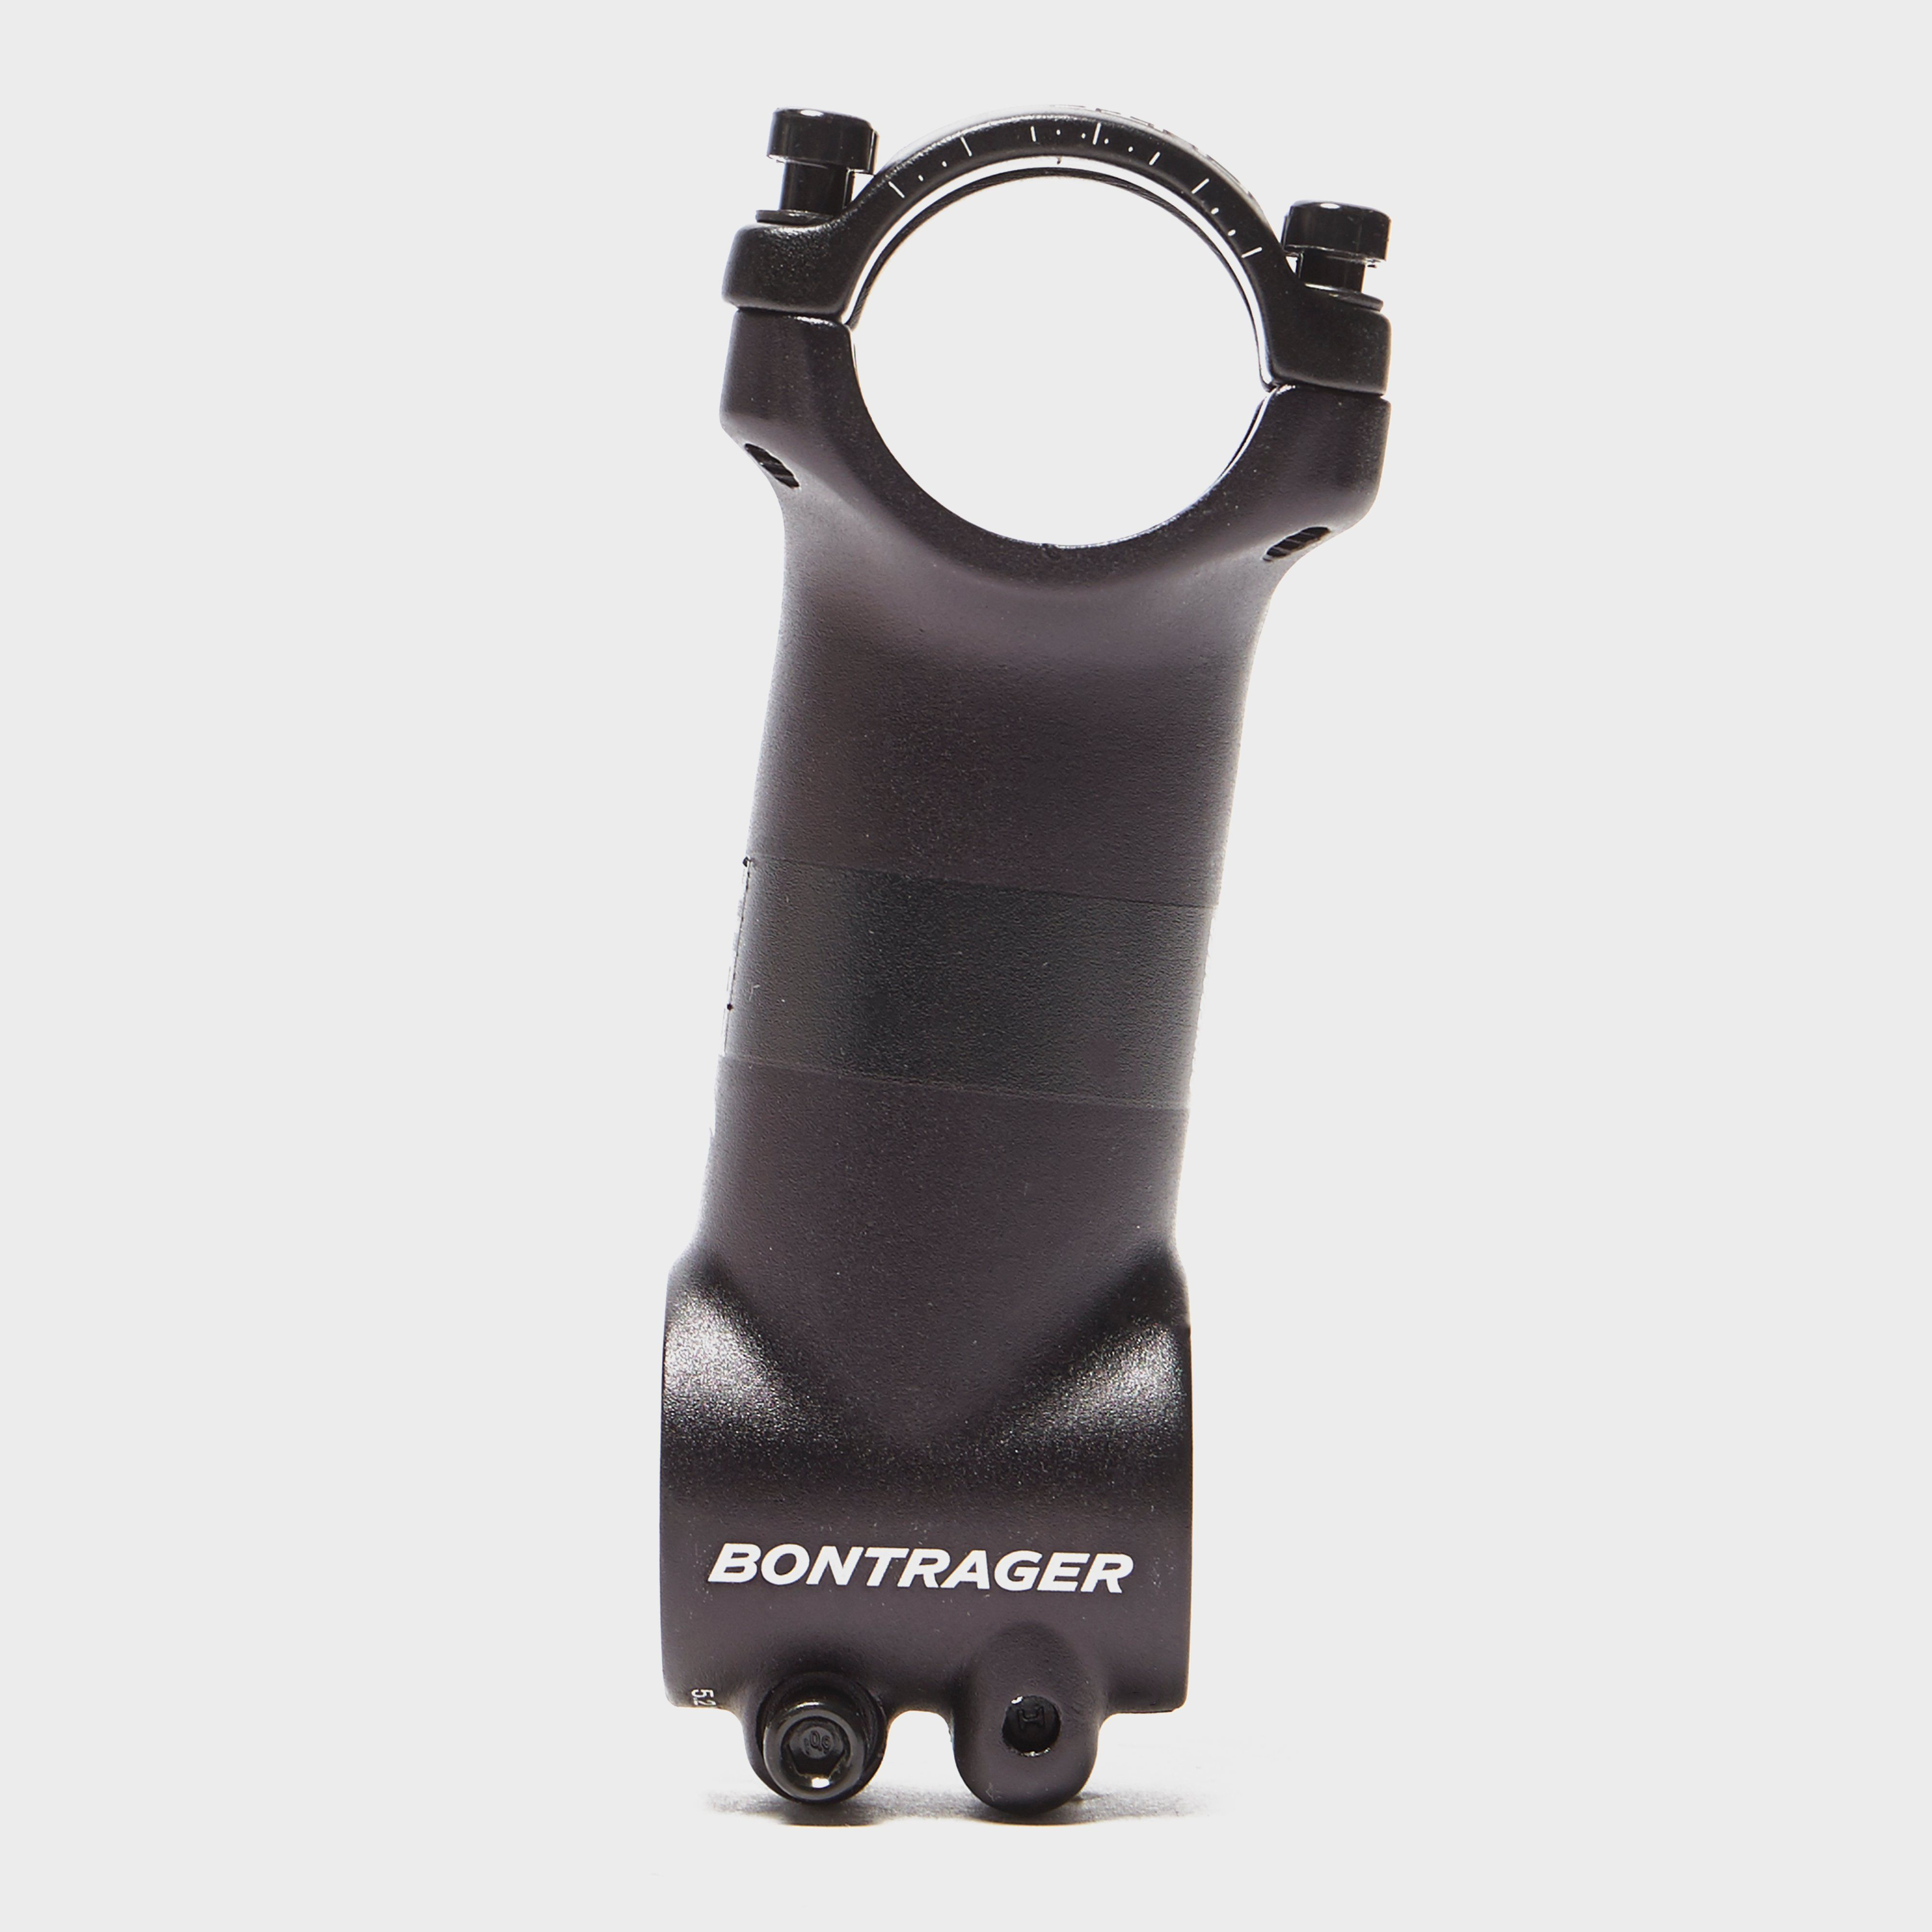 BONTRAGER Elite 7 Degree Stem 90mm